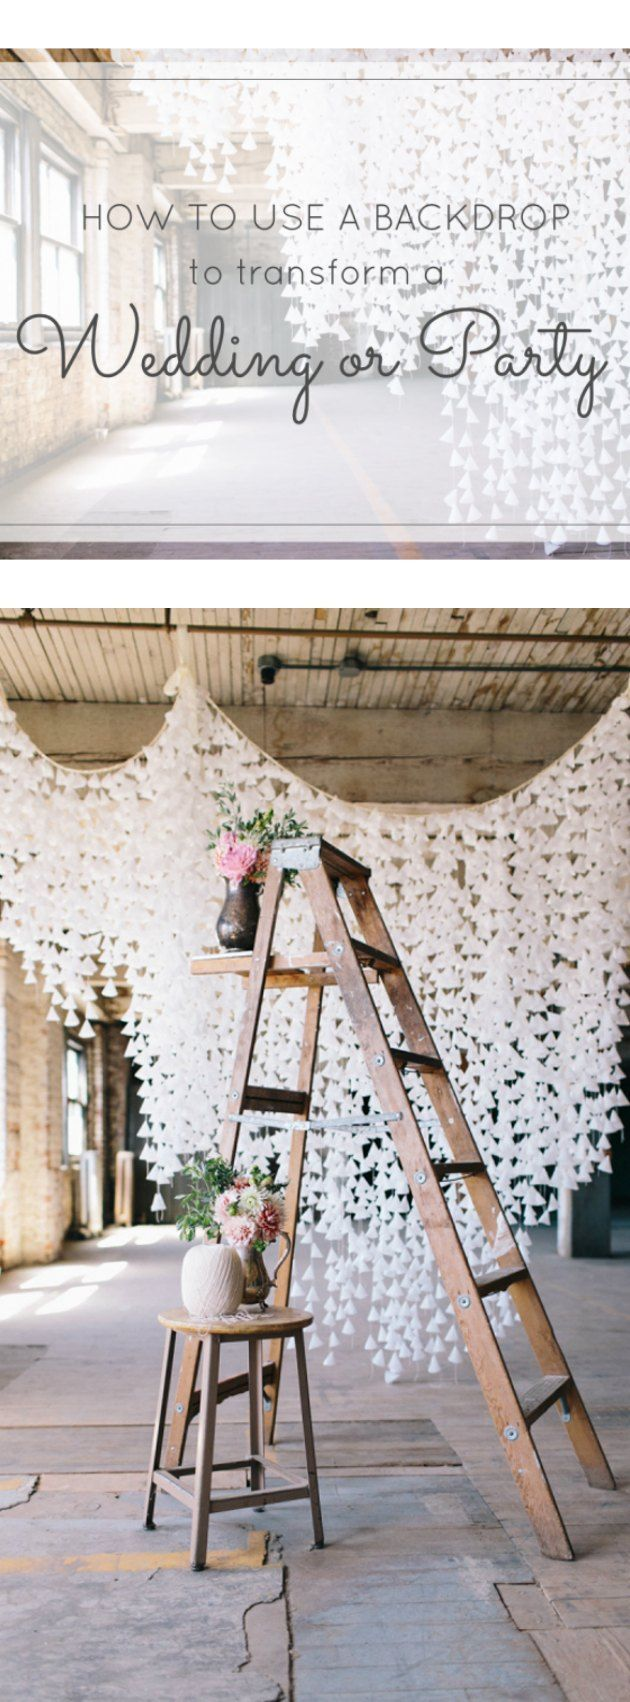 How a backdrop can transform a wedding or party plus a diy wax how a backdrop can transform a wedding or party plus a diy wax paper junglespirit Choice Image